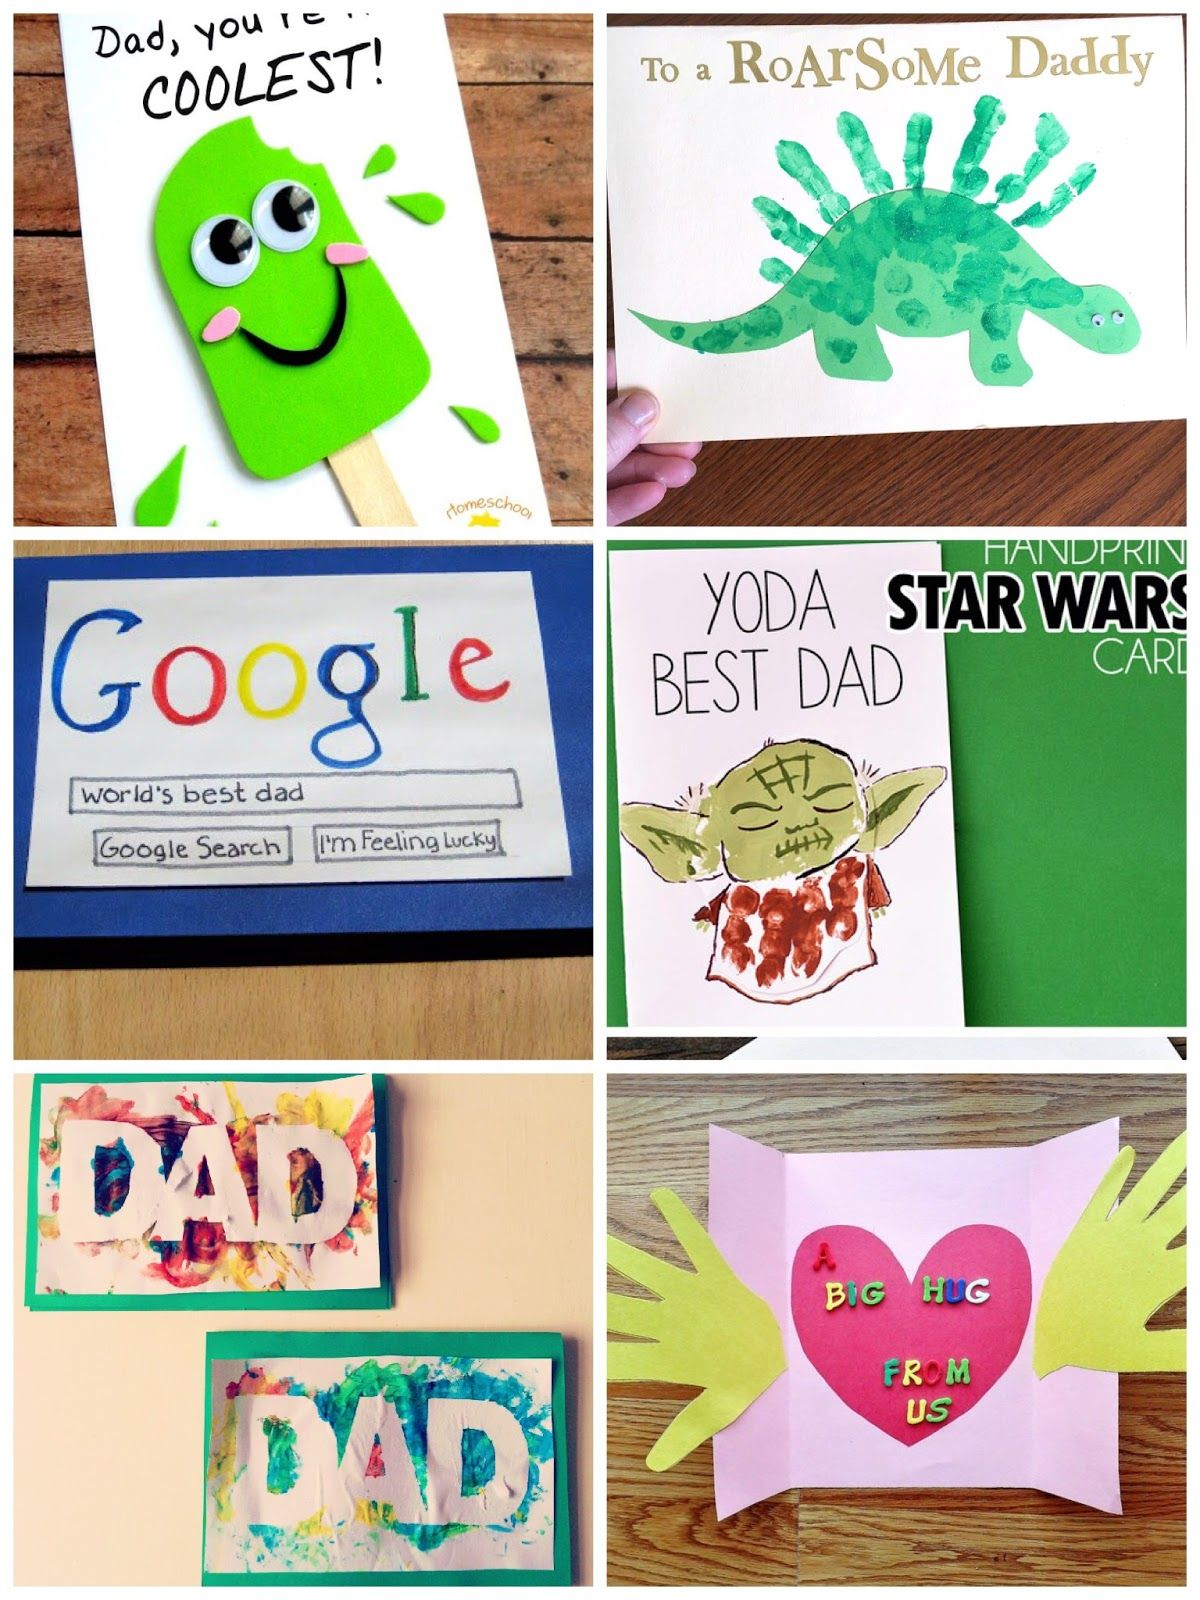 40 Homemade Fathers Day Cards (With images) | Diy father's day ...